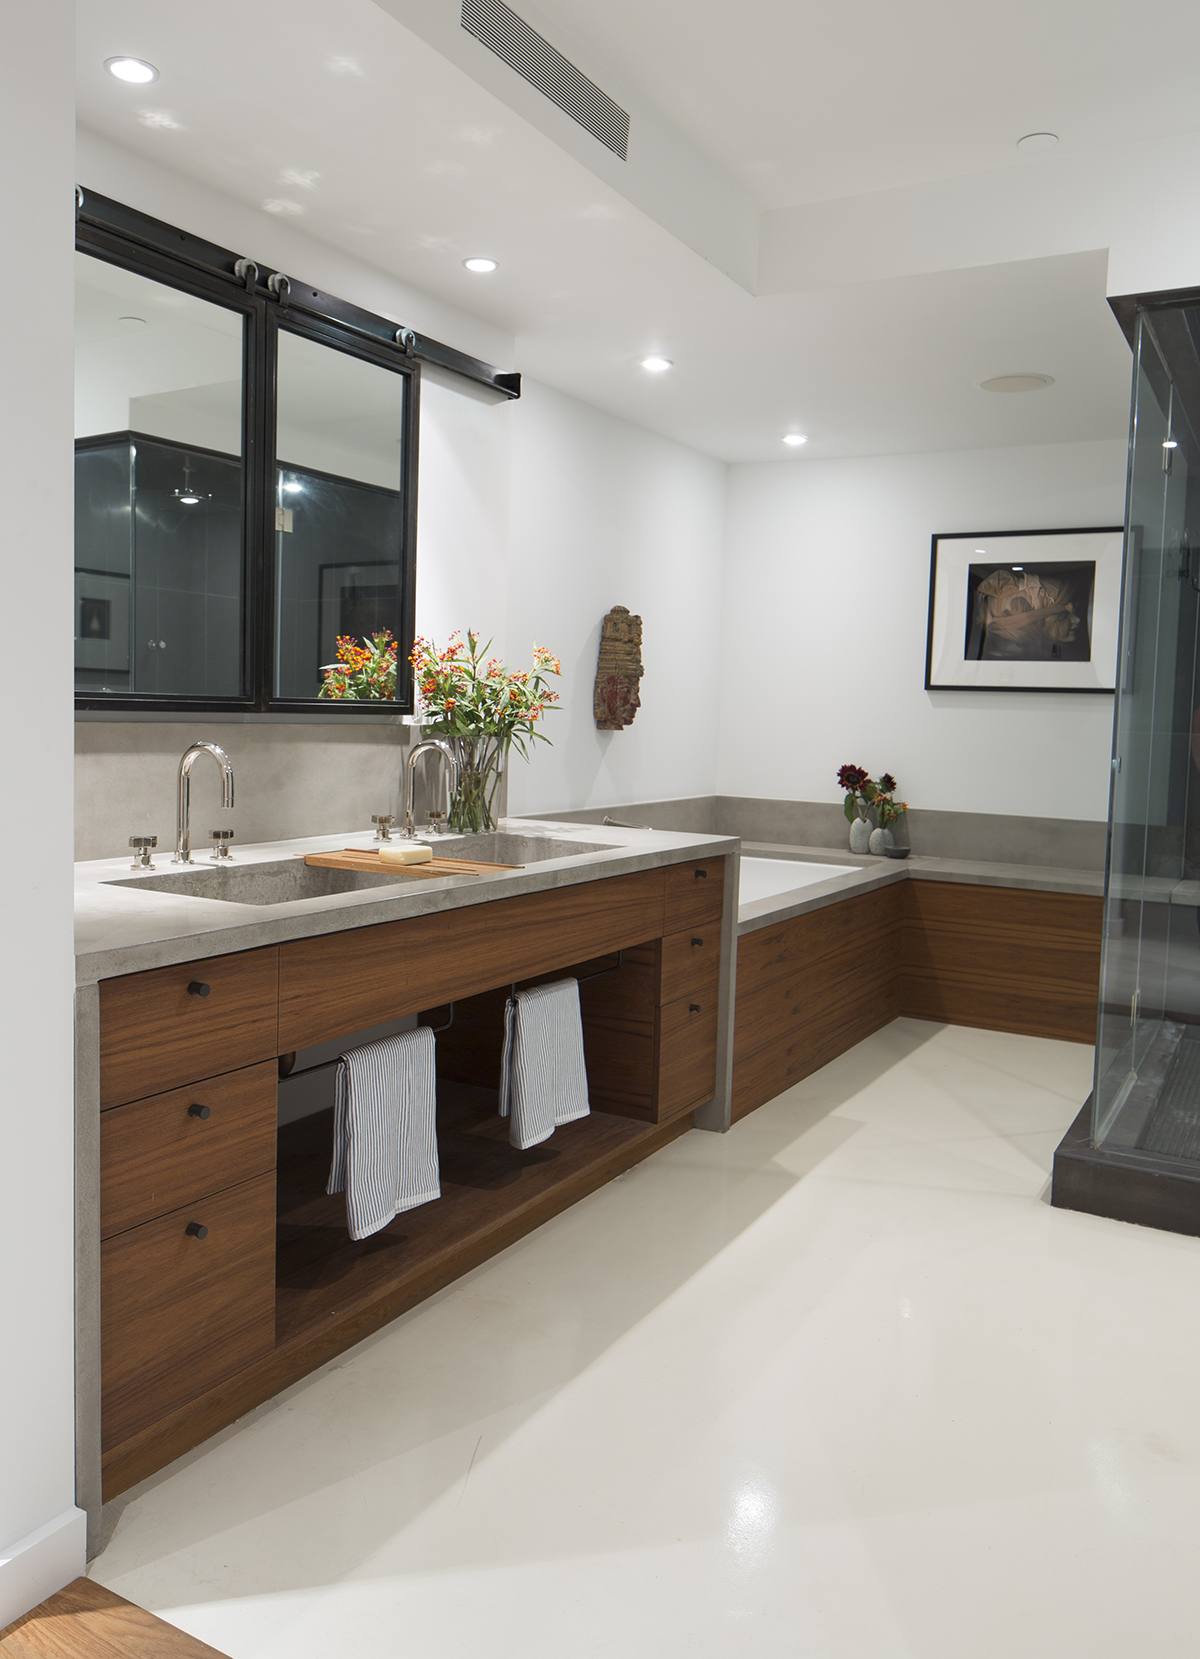 Get Real Surfaces concrete vanity and bathtub